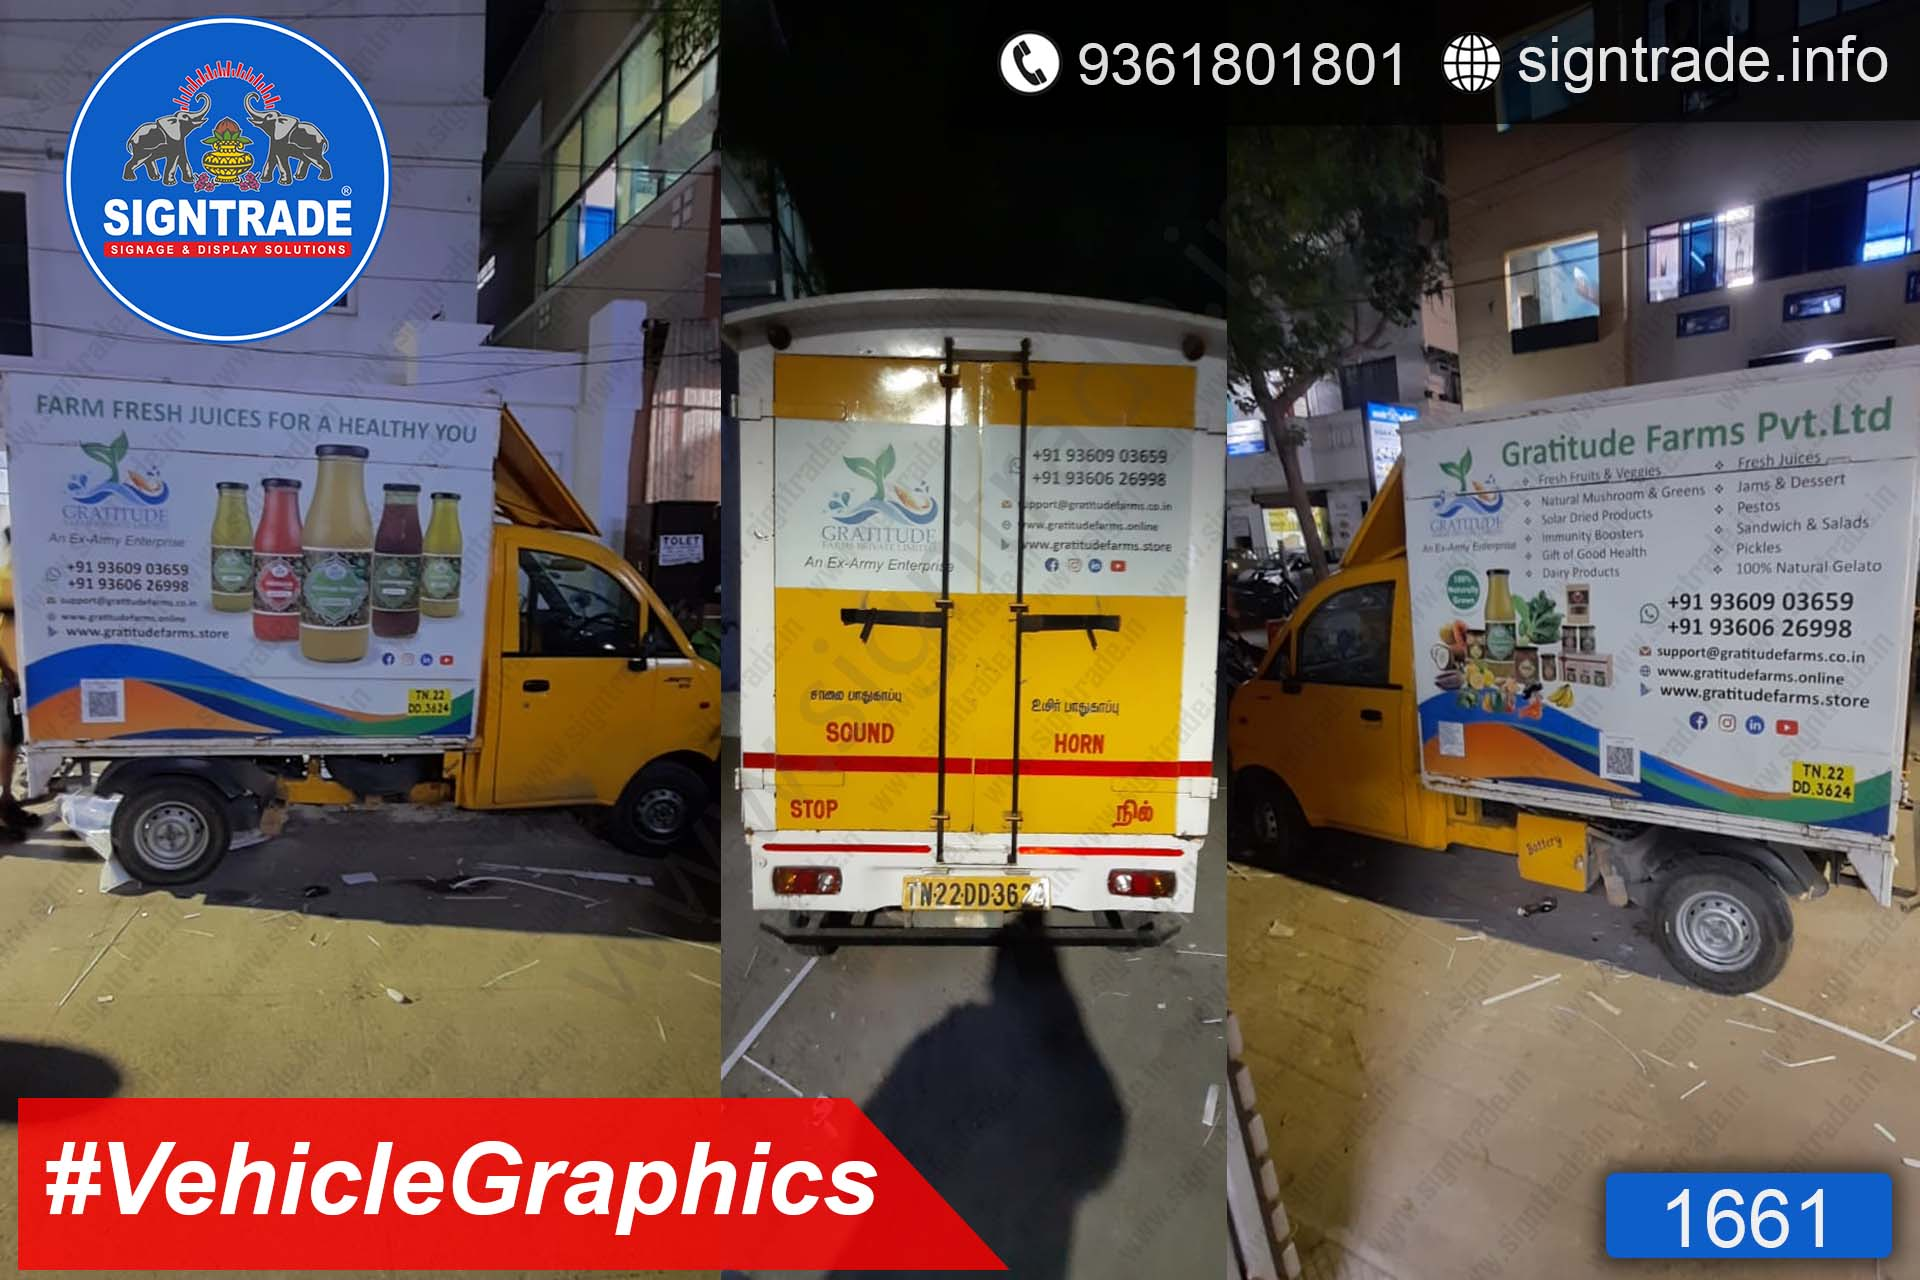 Gratitude Farms Private Limited, Chennai - SIGNTRADE - Vinyl Printing, Van Graphics Service in Chennai